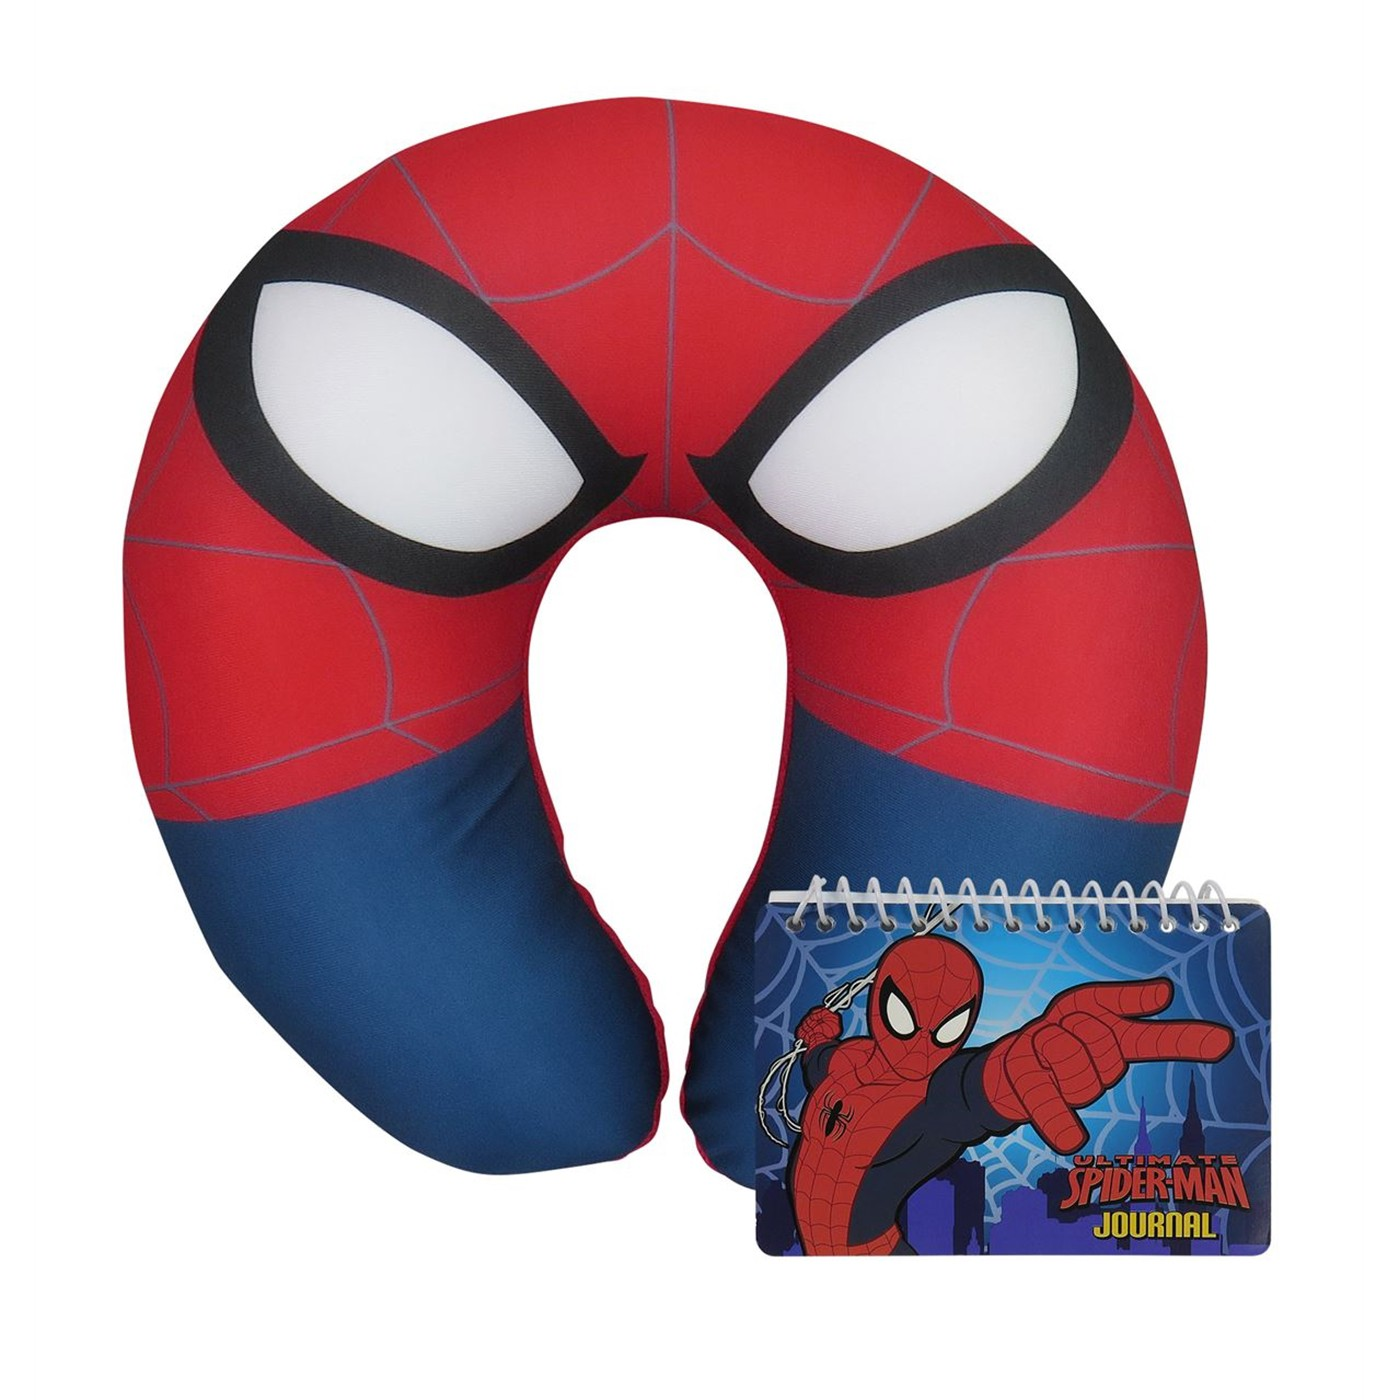 Spiderman Neck Pillow and Journal Book Set